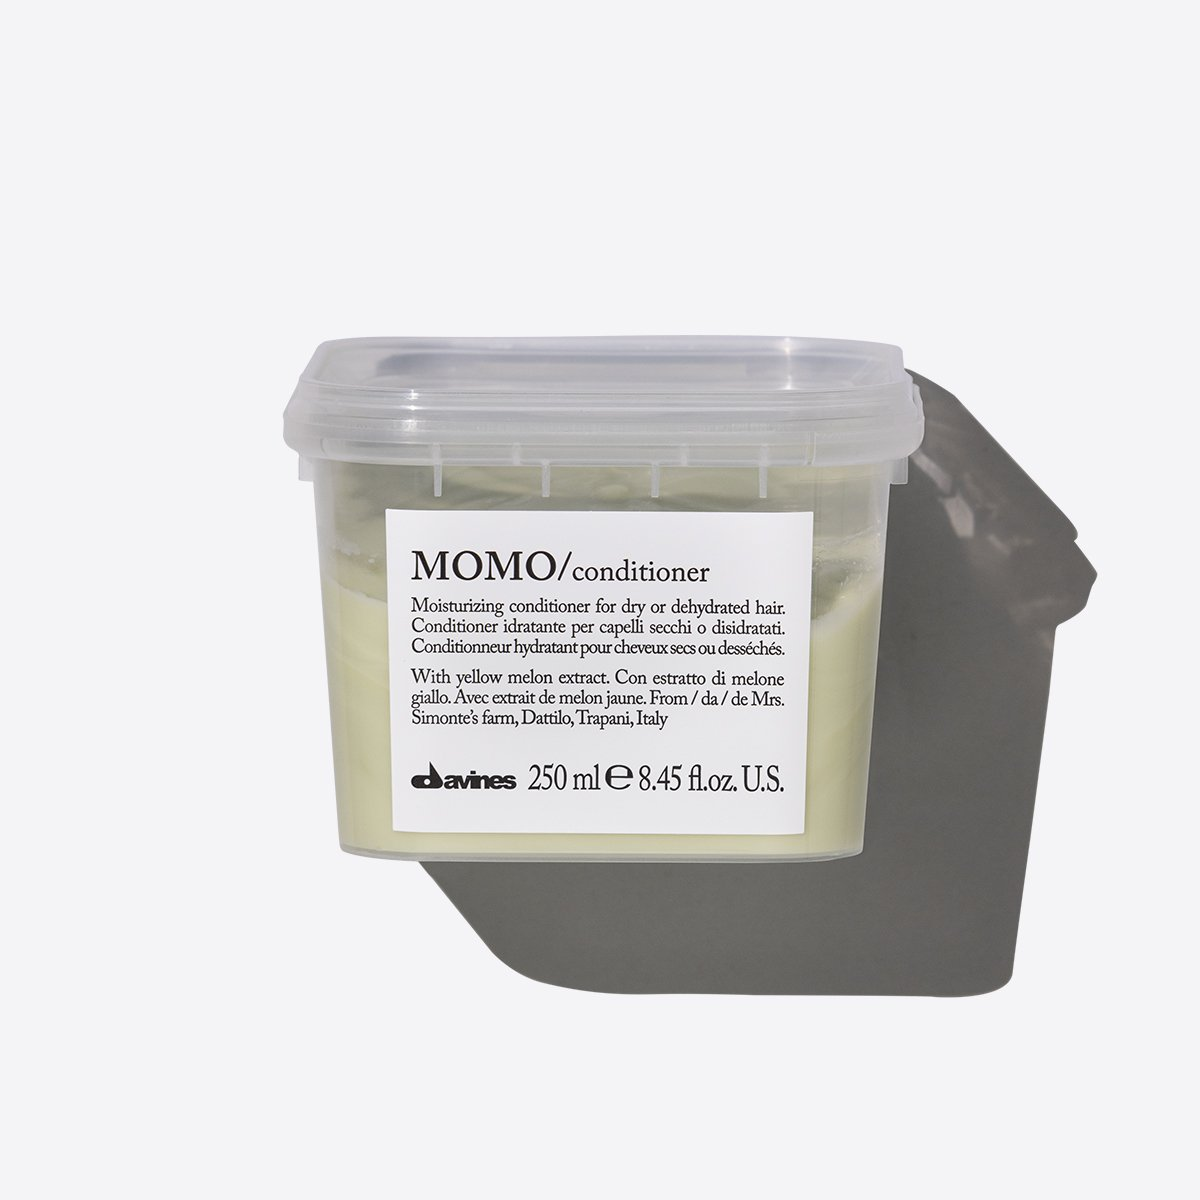 eco coscienziose conditioner momo davines